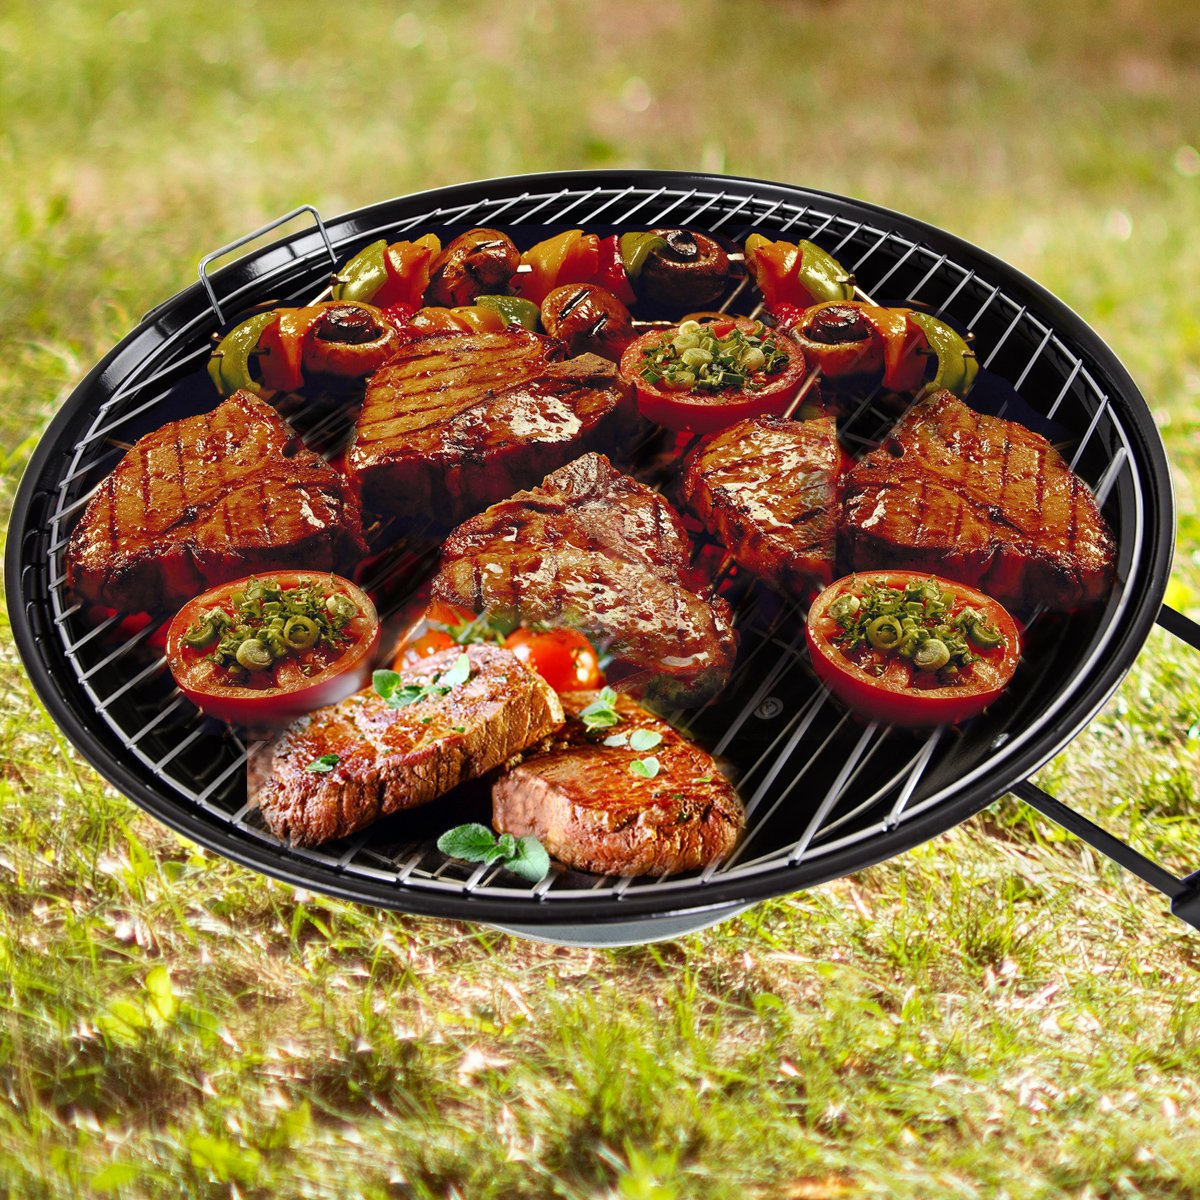 Costway Kettle Grill Portable BBQ Barbecue Charcoal With Wheels Round Standard Party Camping Garden Outdoor 2 Size 47CM/57CM (47CM)